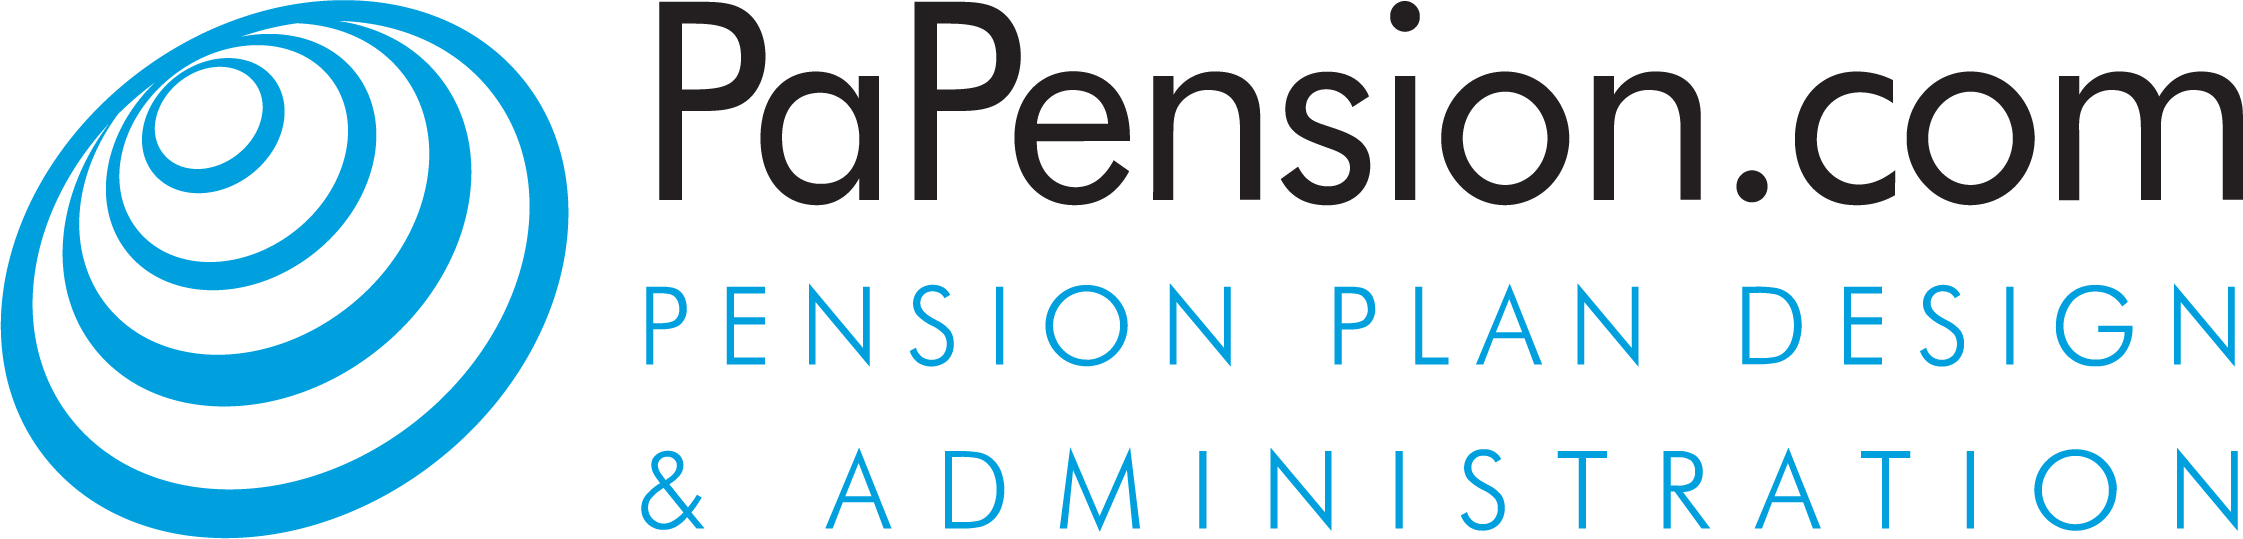 Pension Administrators